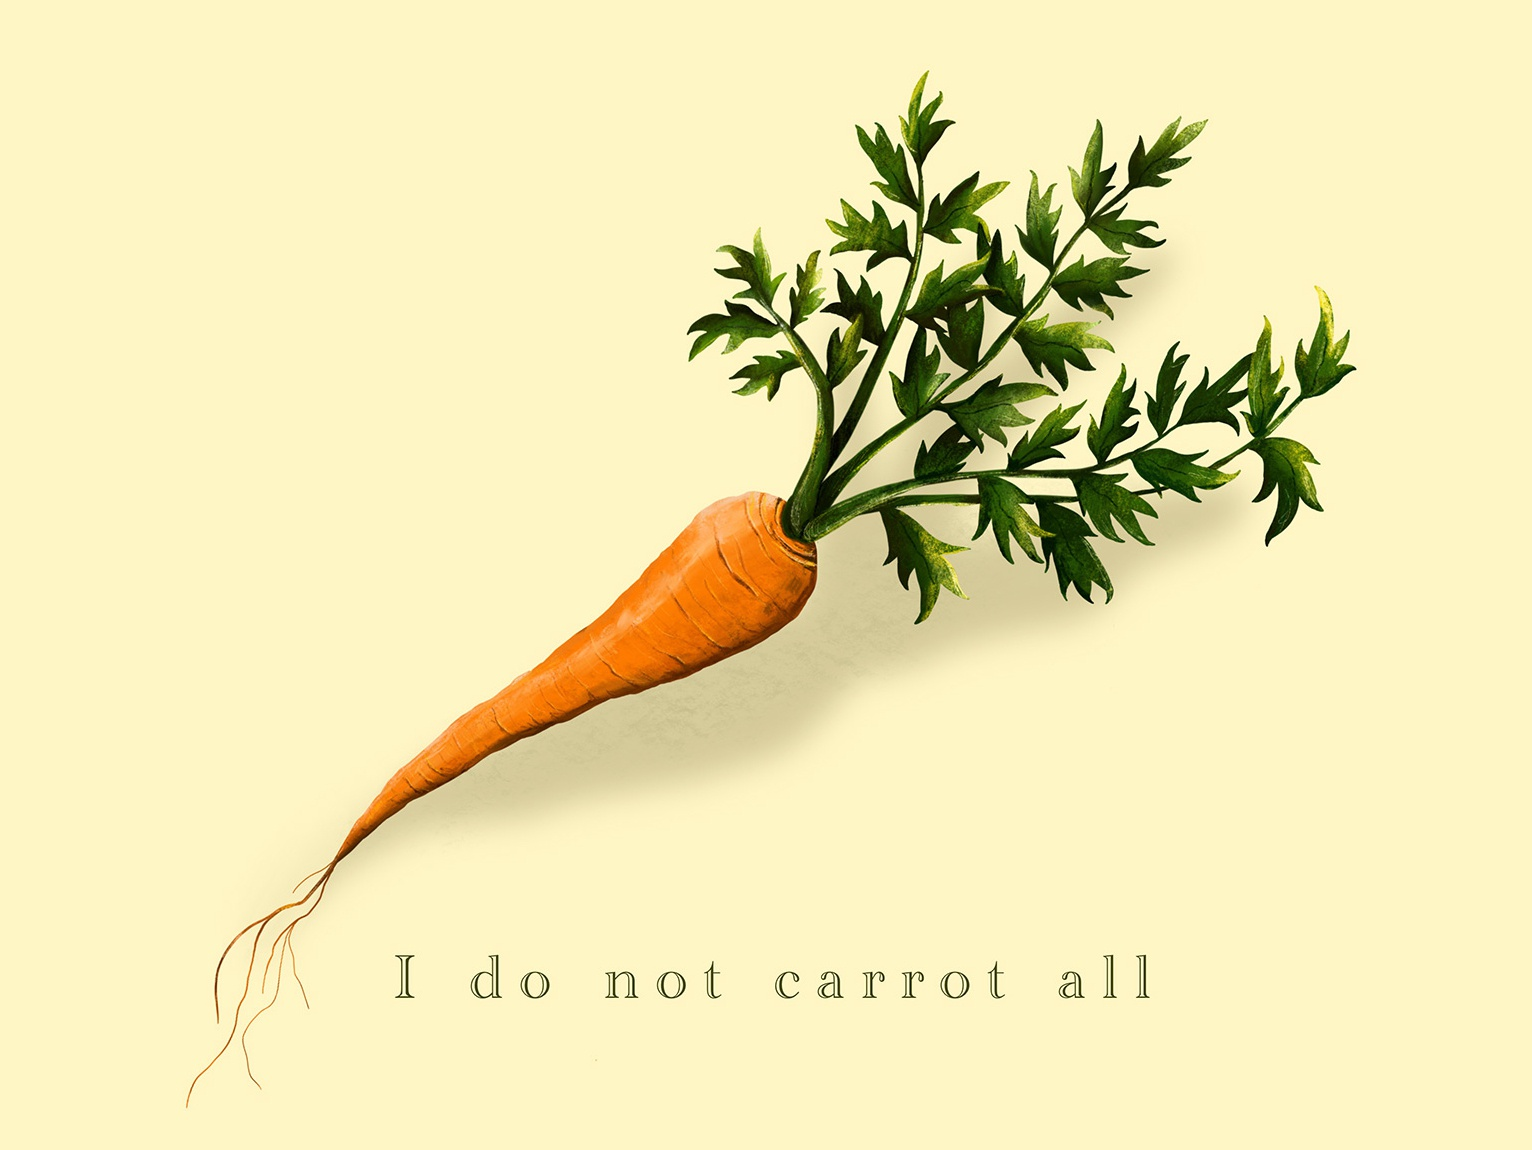 I do not carrot all procreate vegetable carrot pun food vintage type illustration